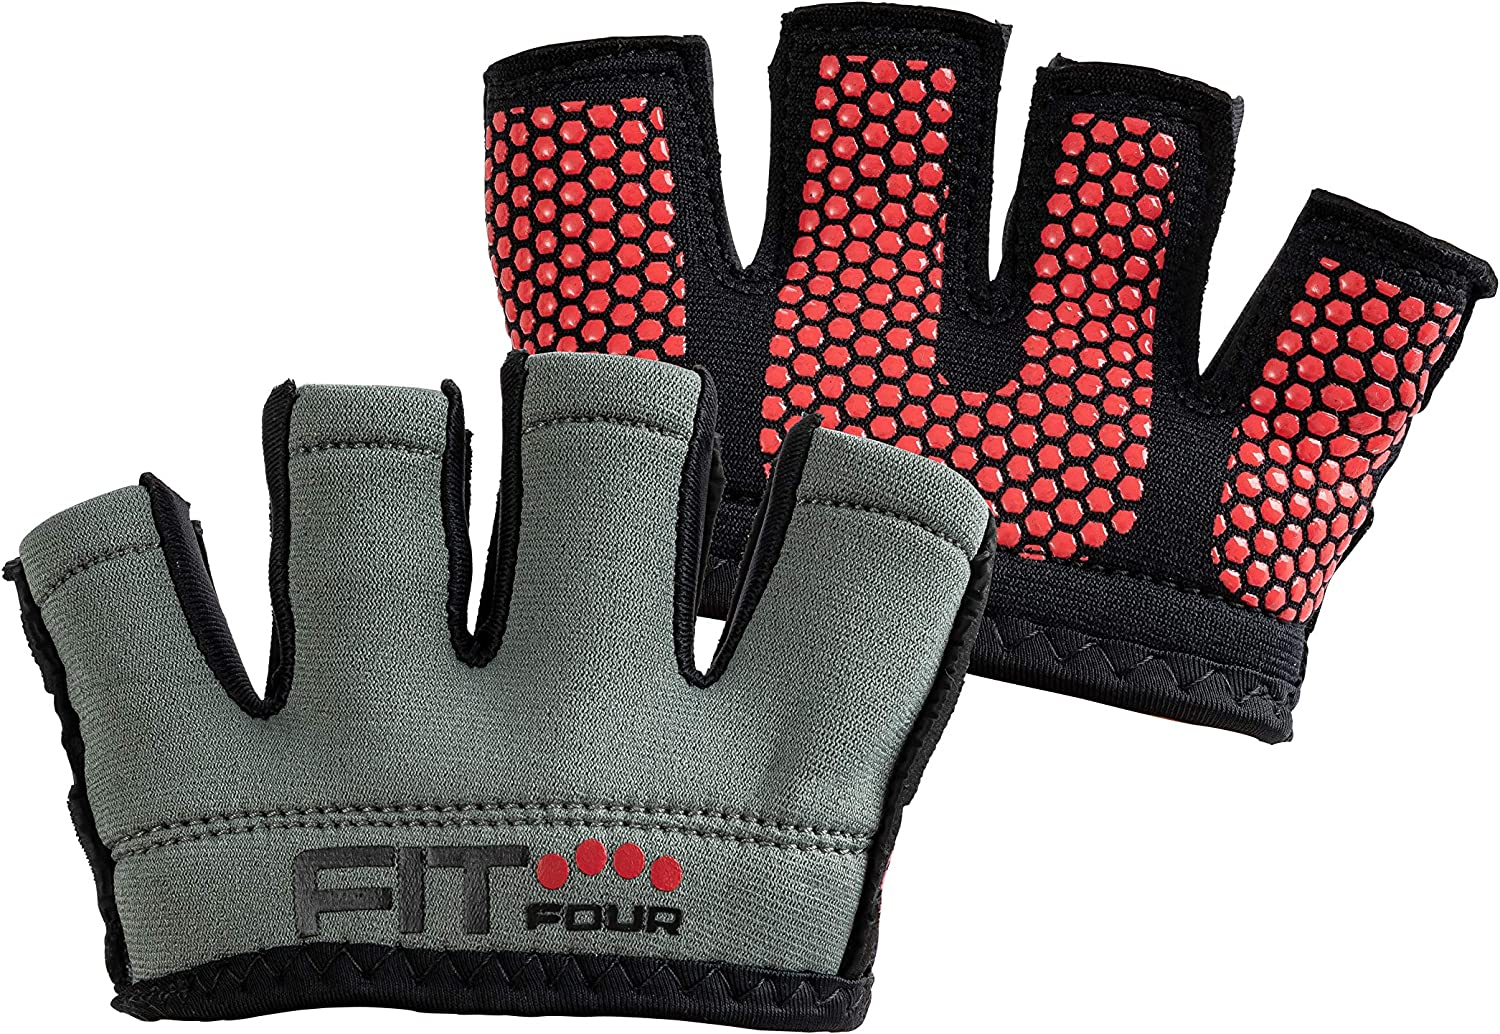 Fit Four OCR Neo Grip Gloves Offical Glove